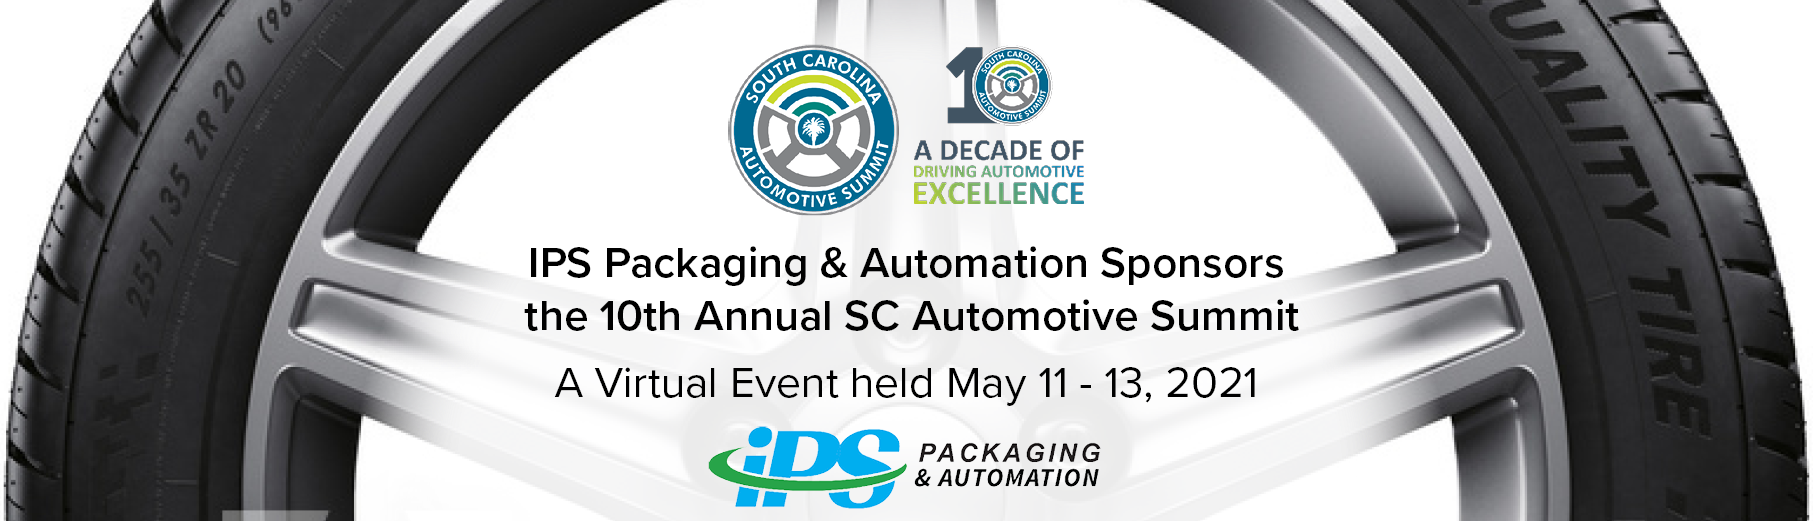 white background with tire surrounding text ips packaging & automation sponsors 10th annual SC automotive summit